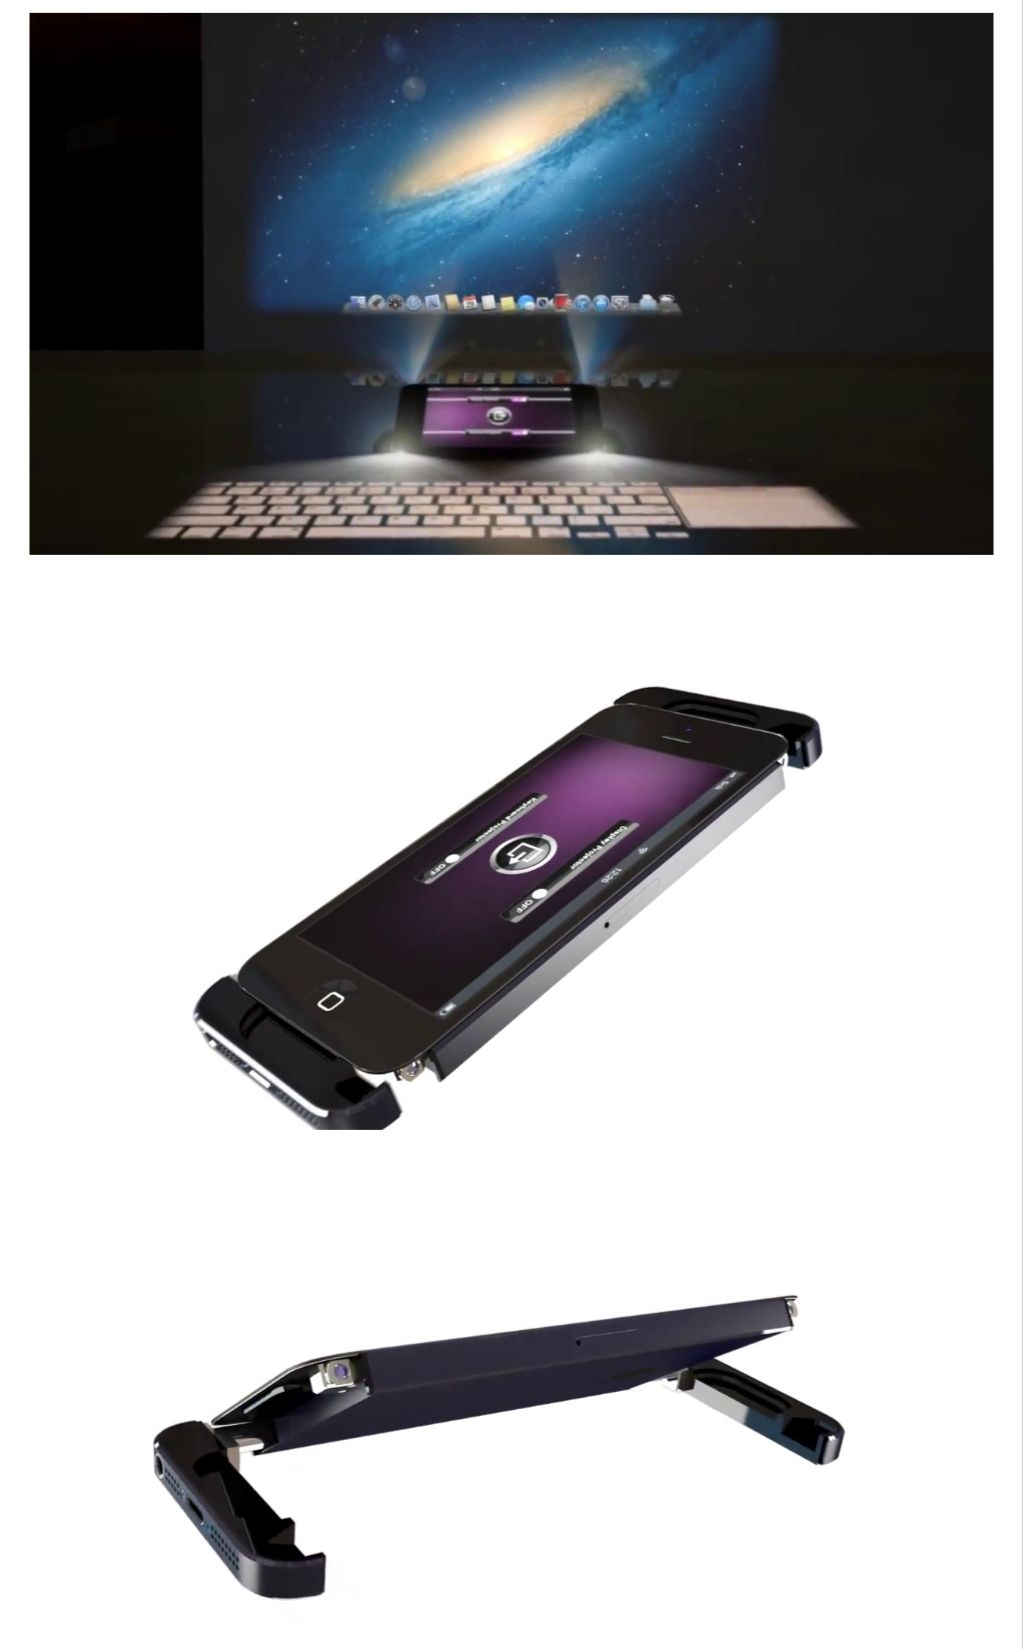 Epic iPhone 5S Concept Features Dual Built-In Projectors